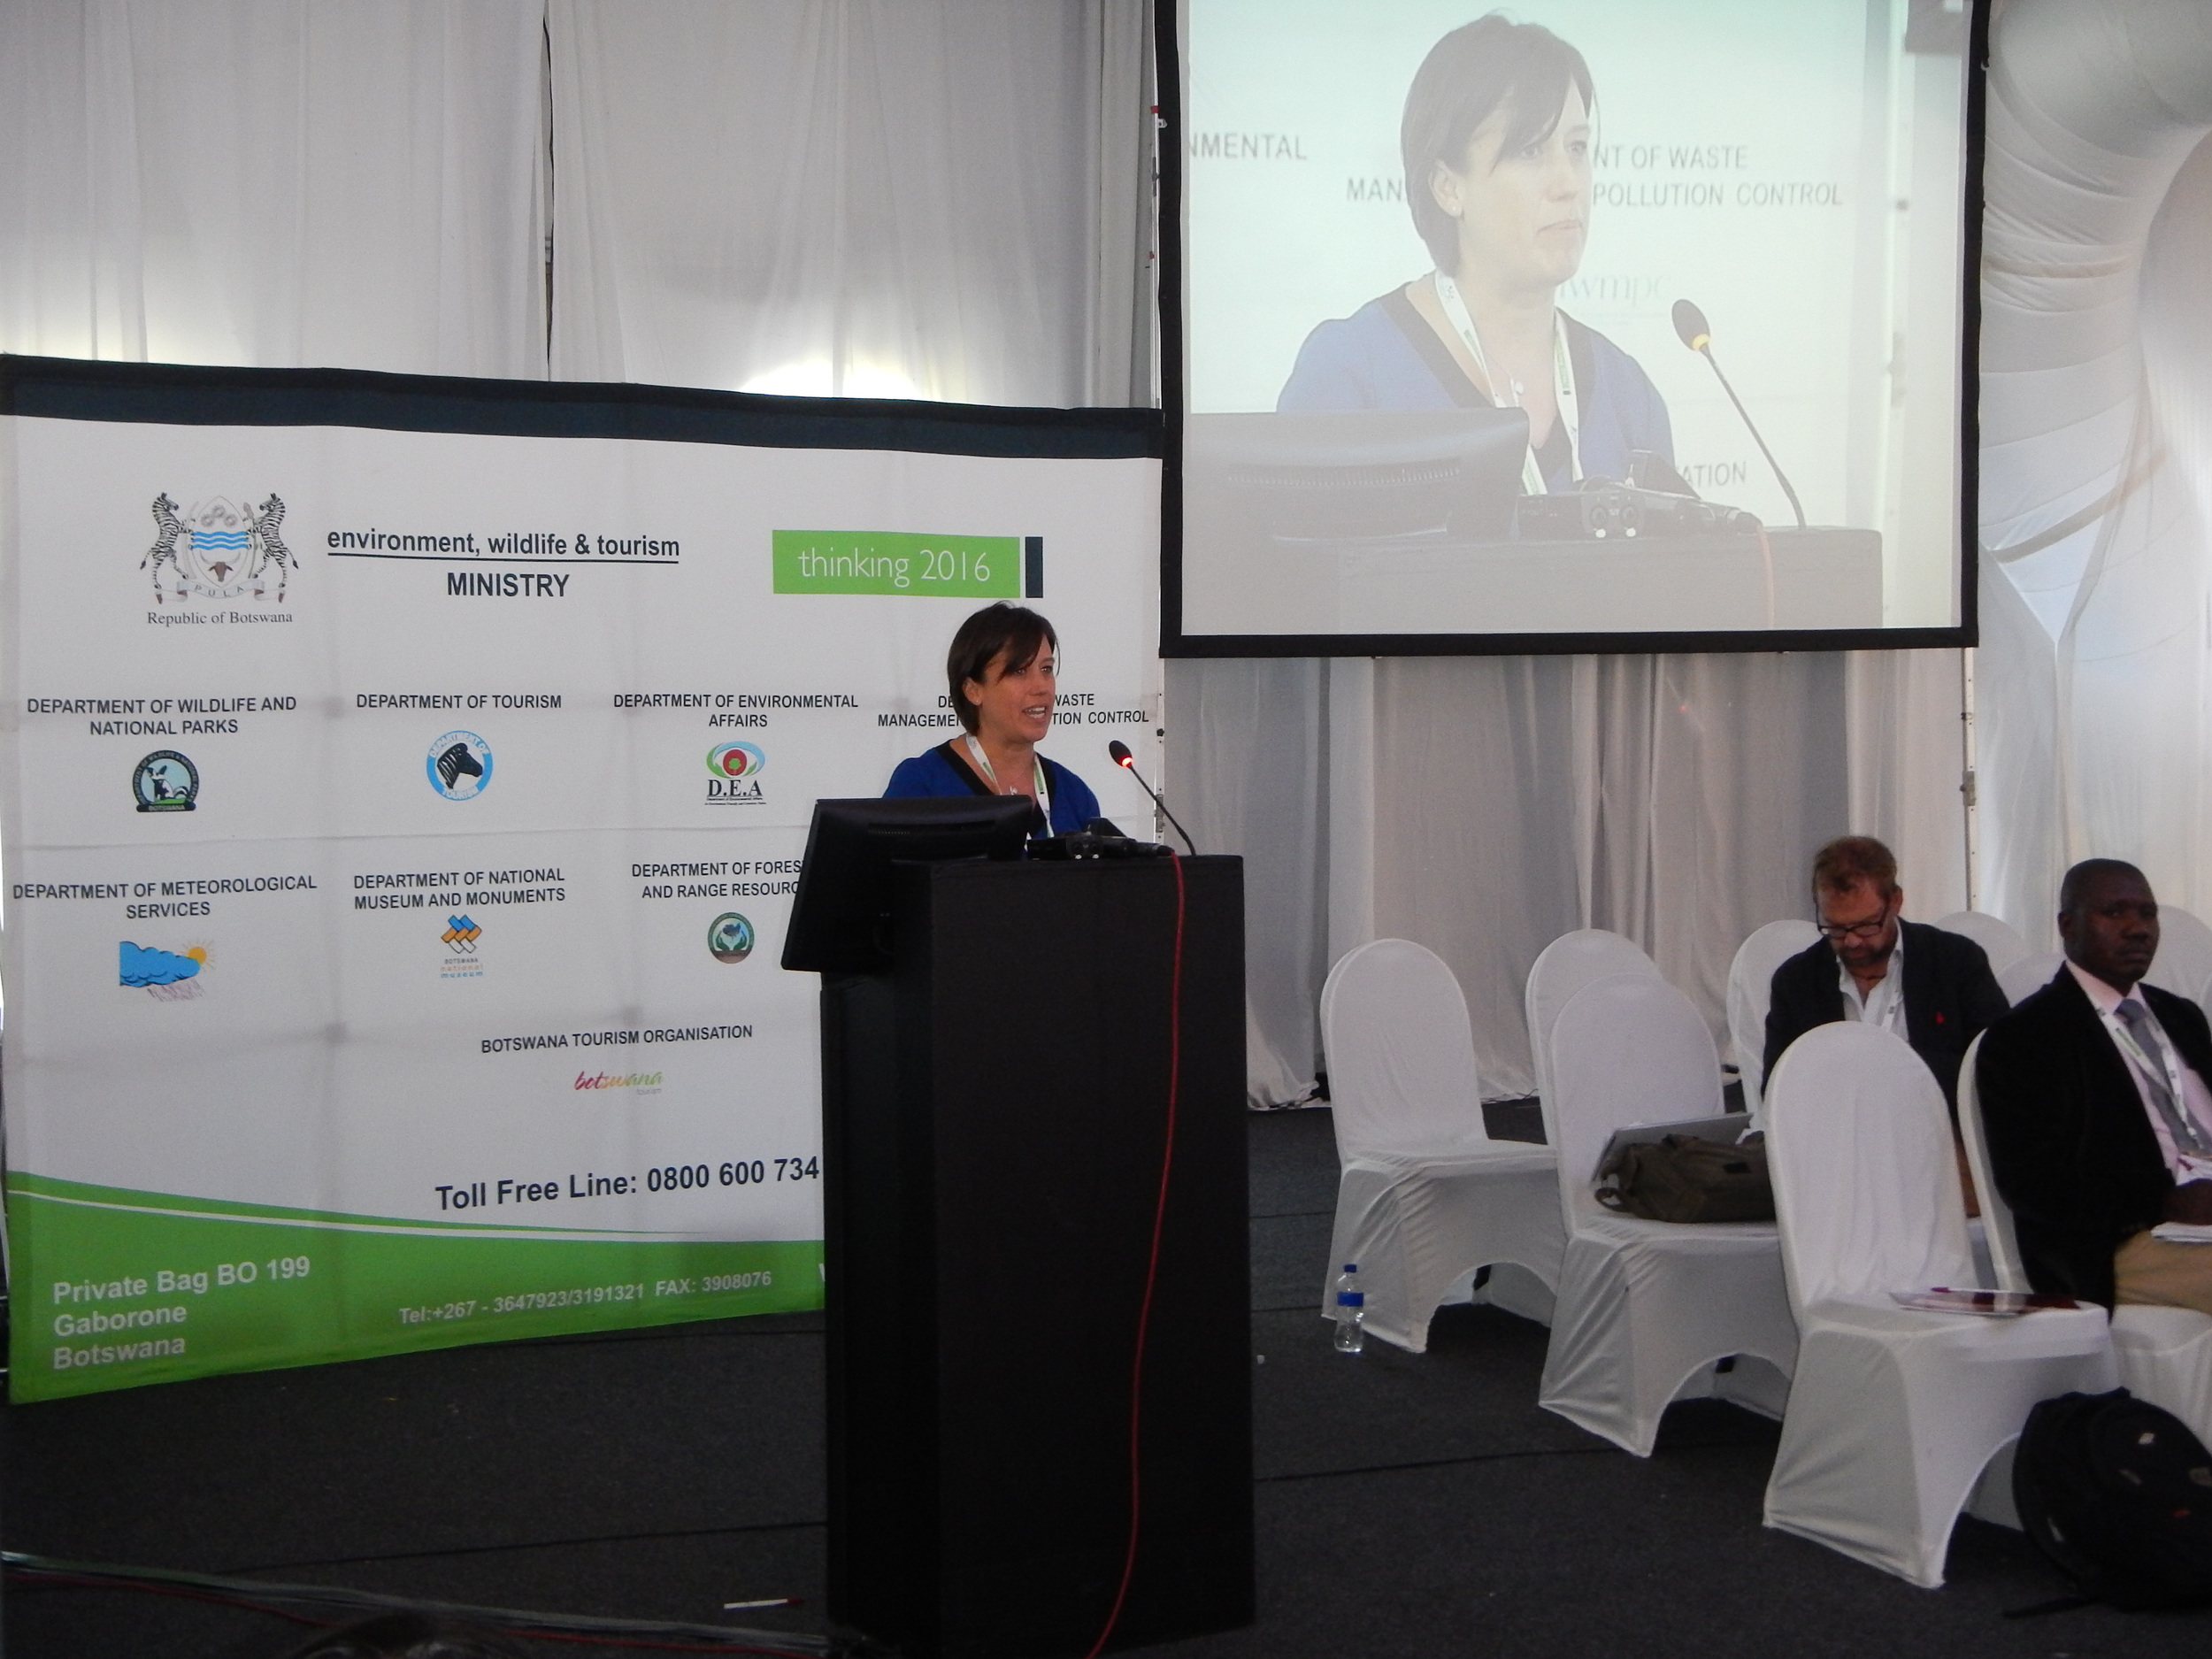 Dune Ives, Vulcan Philanthropy's Senior Director of Philanthropic Initiatives and co-lead manager of the Paul G. Allen Family Foundation addresses the delegates of the African Elephant Summit in Kasane, Botswana on March 23, 2015.